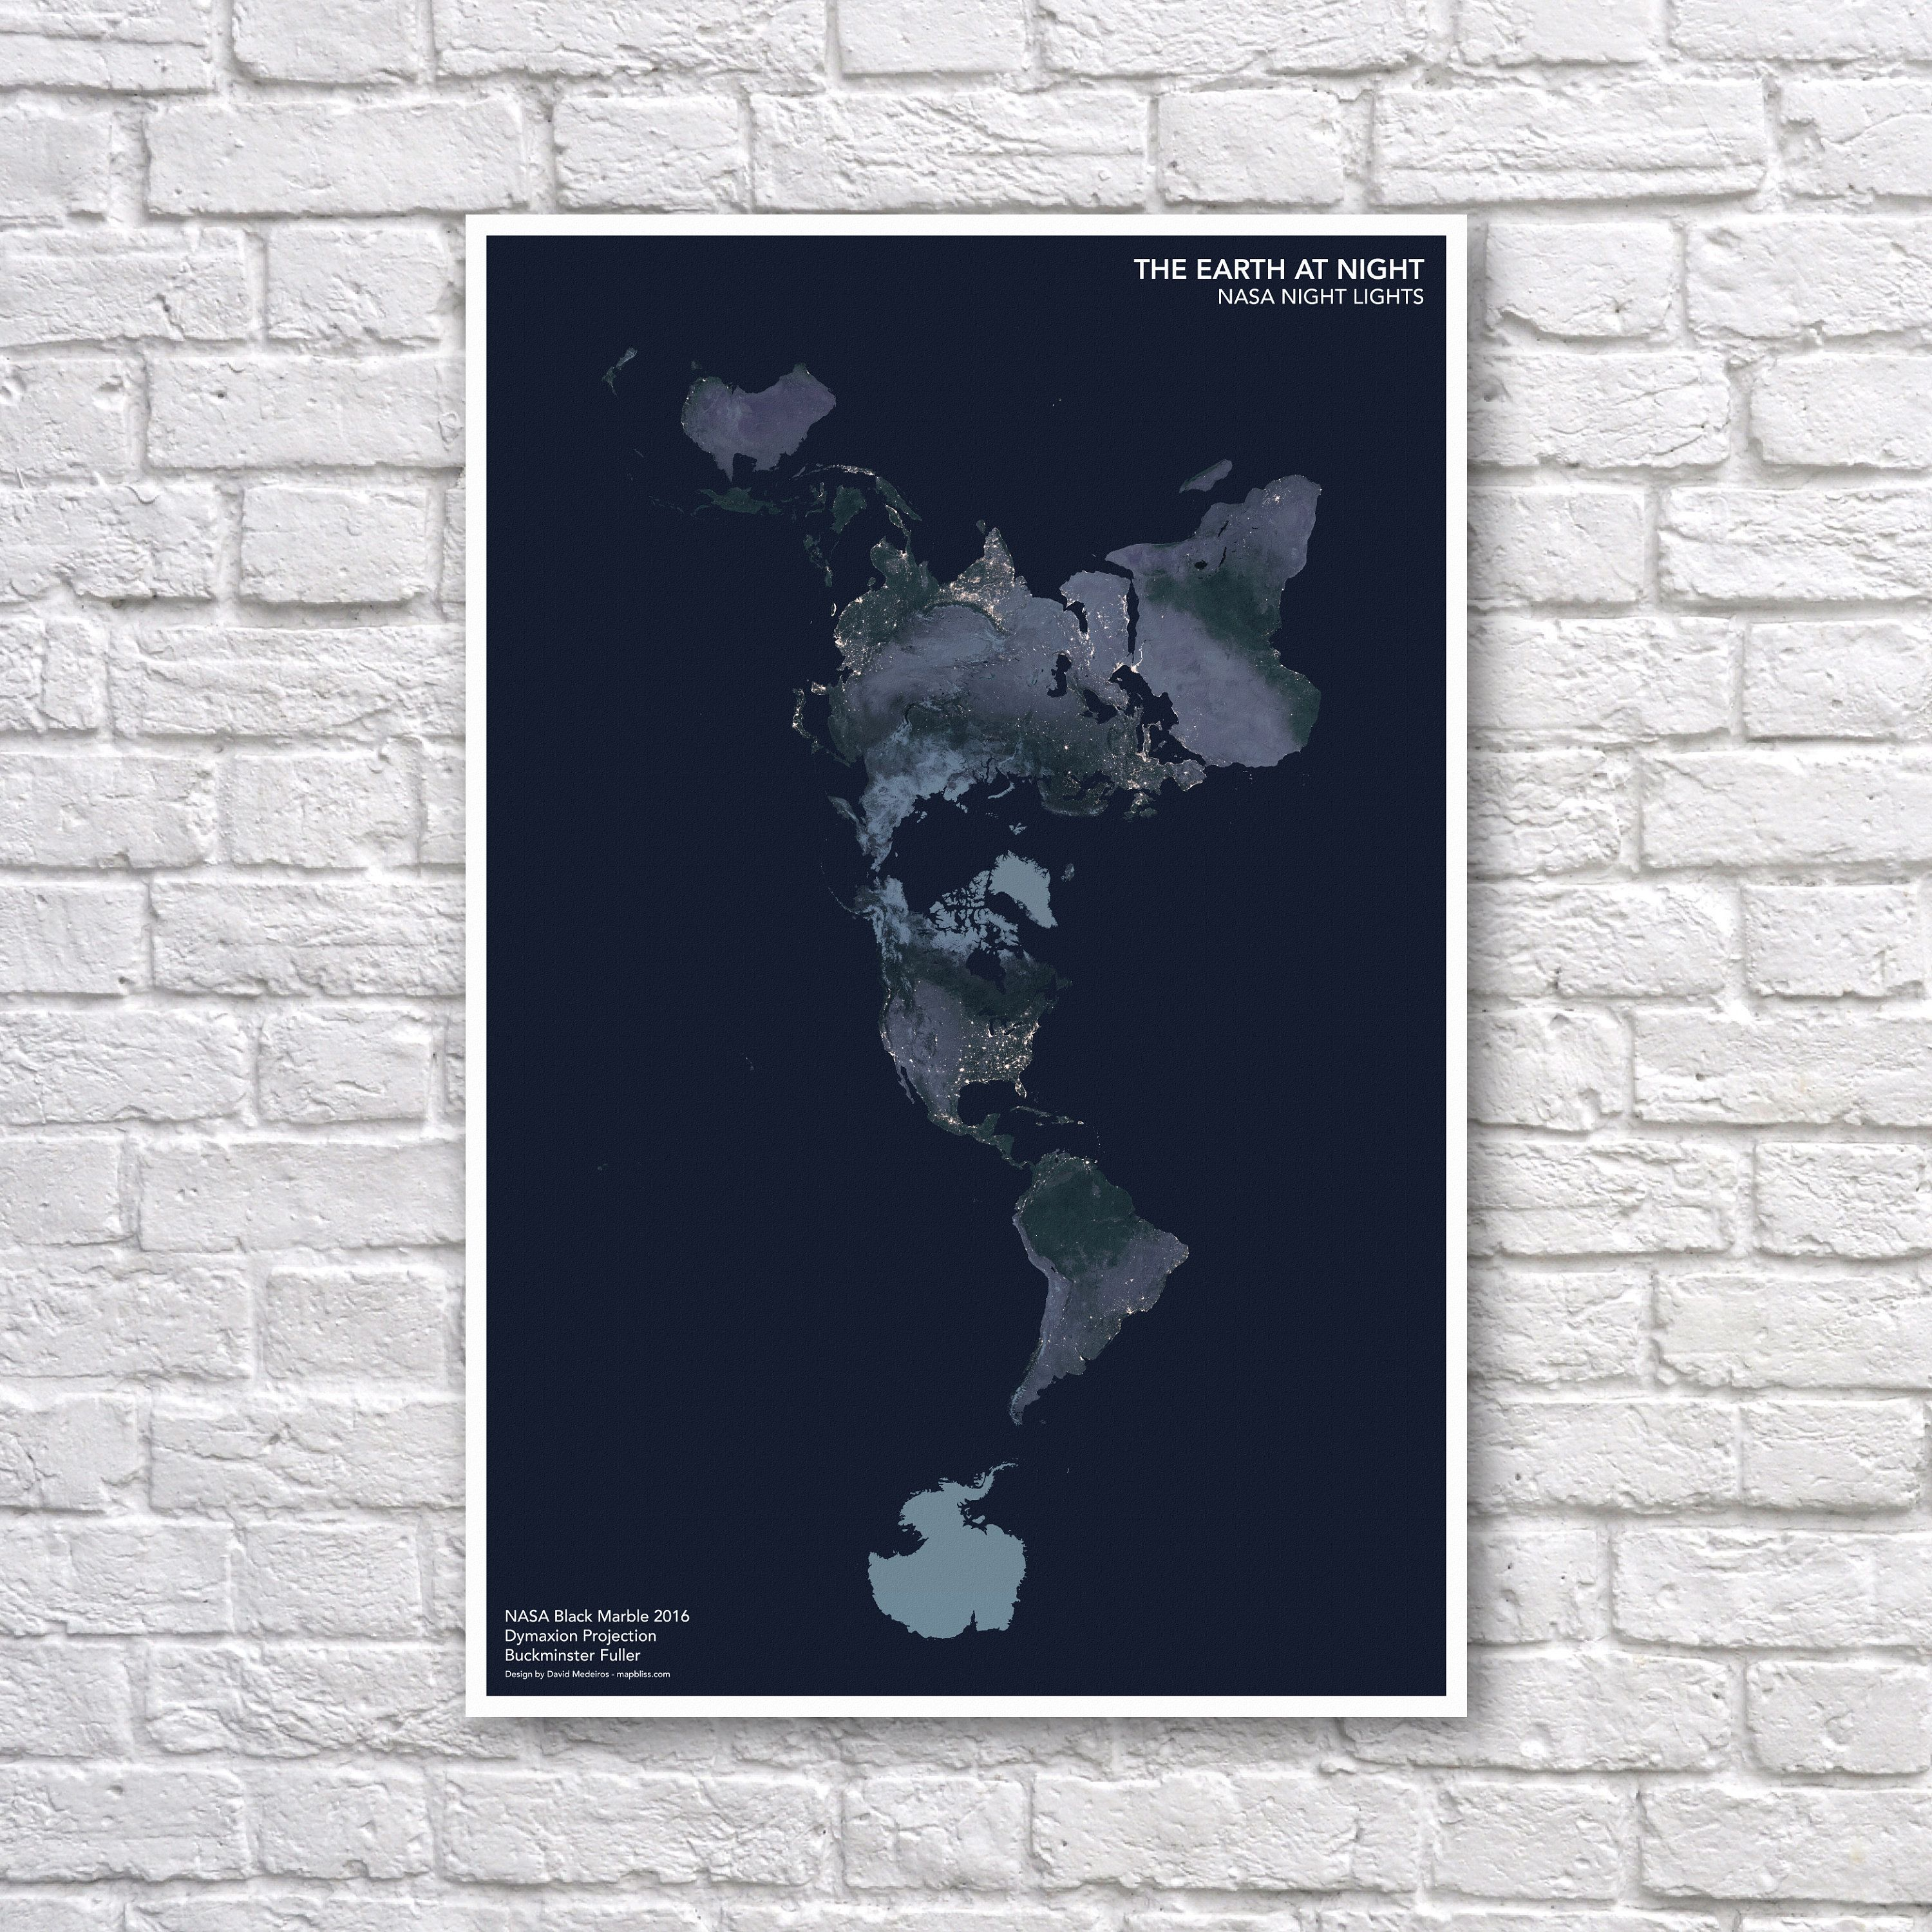 Nasa earth at night poster night lights image buckminster fuller nasa earth at night poster night lights image buckminster fuller projection world map poster gumiabroncs Images